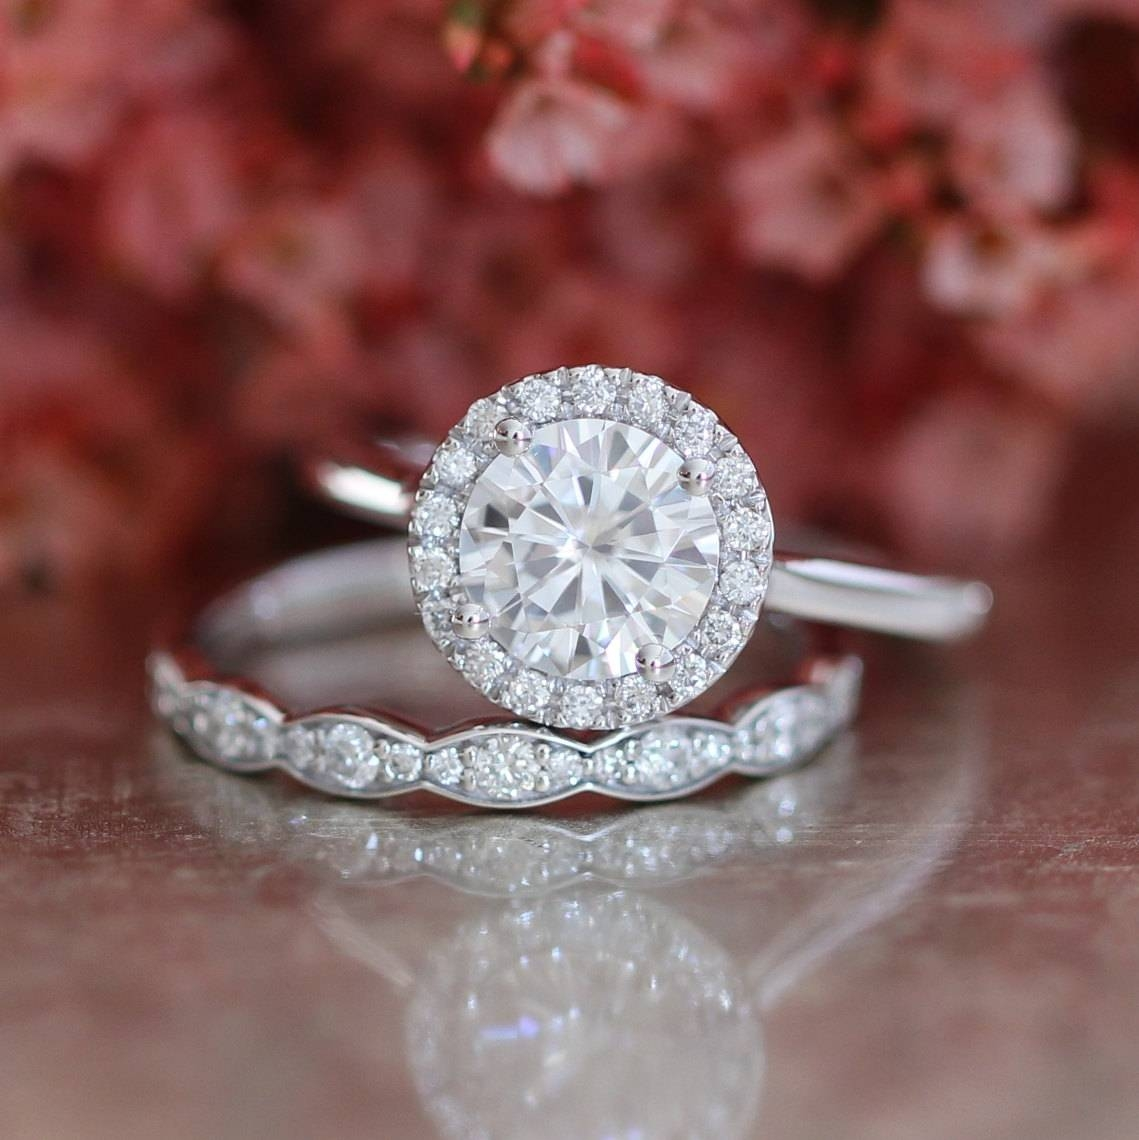 Forever One Moissanite Engagement Ring And Scalloped Diamond Regarding Wedding Bands For Round Solitaire Engagement Ring (Gallery 13 of 15)